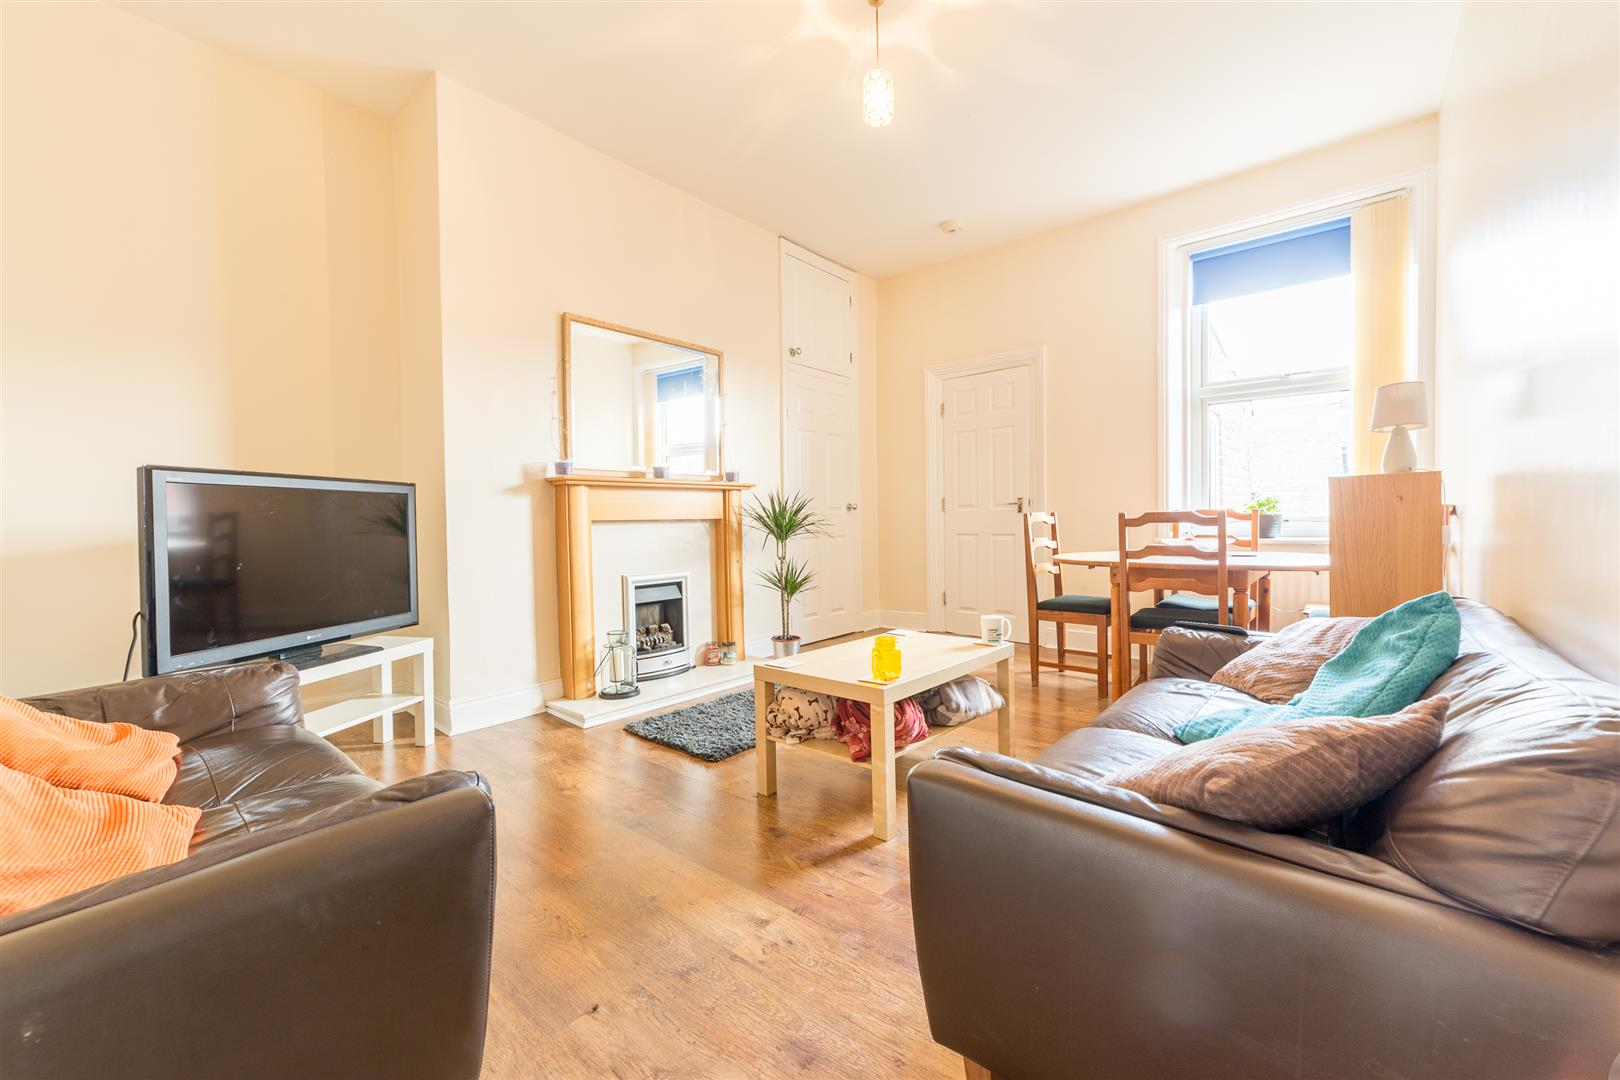 3 bed flat to rent in Newcastle Upon Tyne, NE2 1RB, NE2